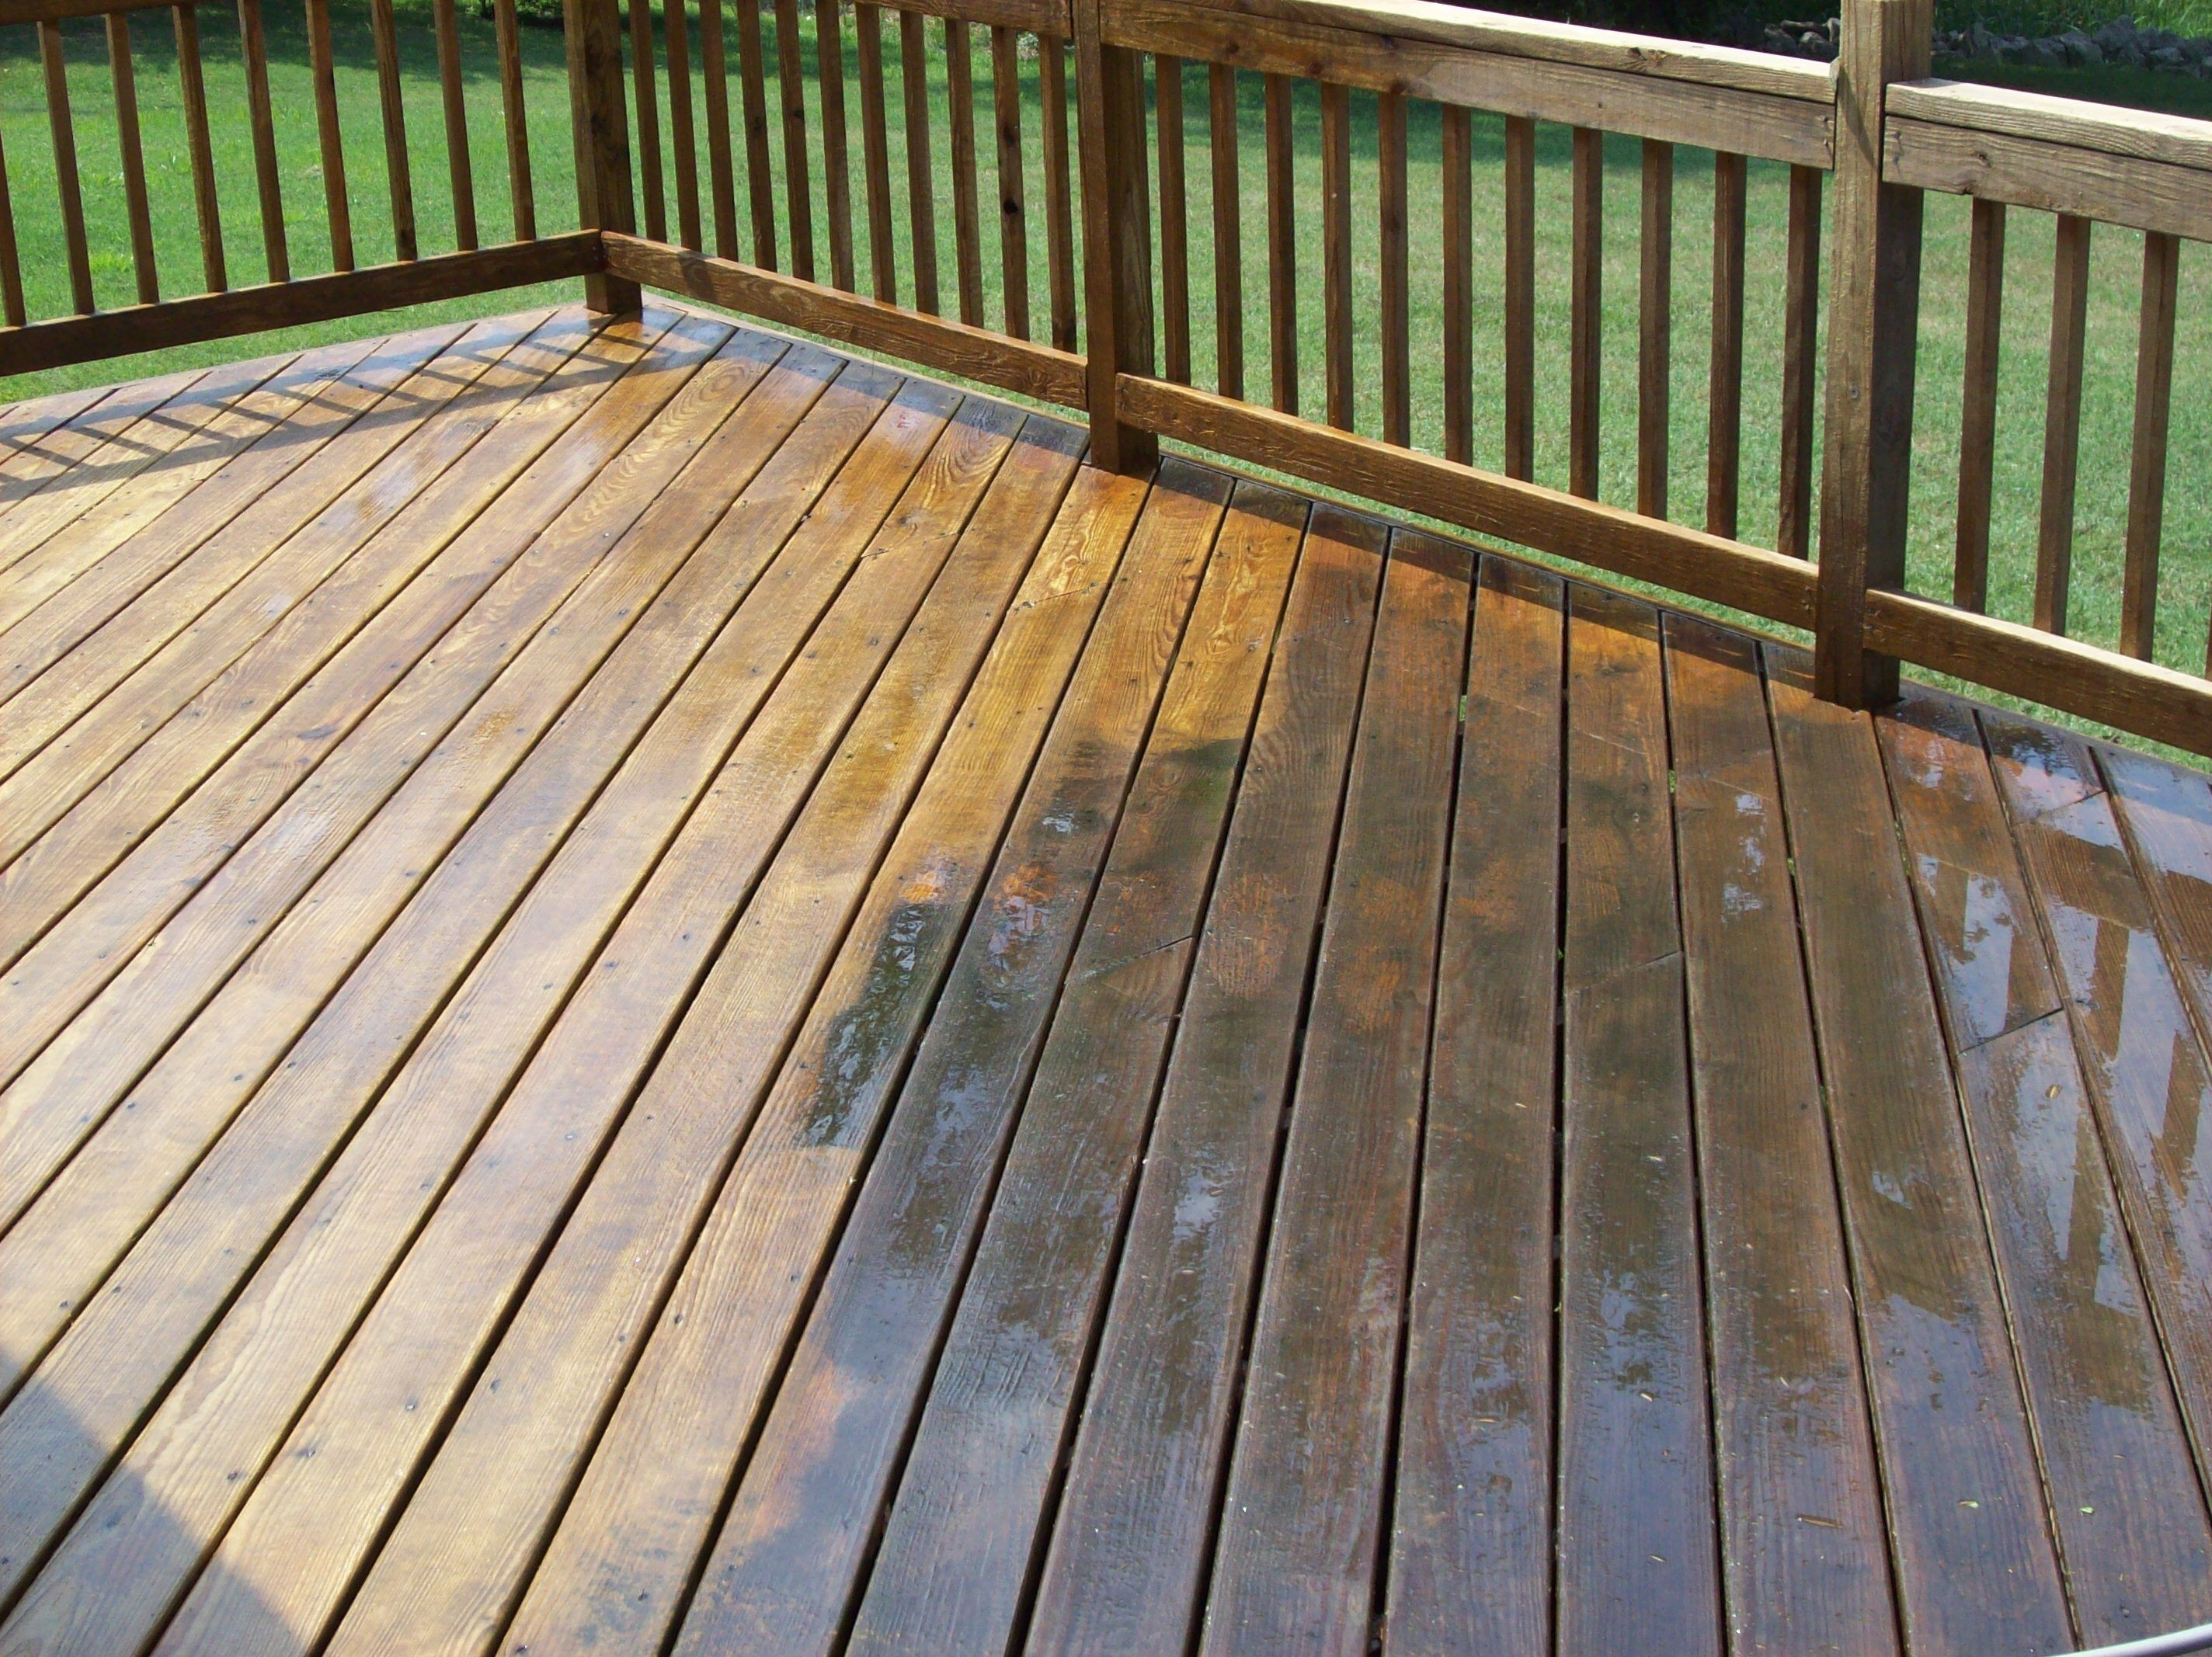 Deck Cleaning To Give The New Look Againg By Waterworx